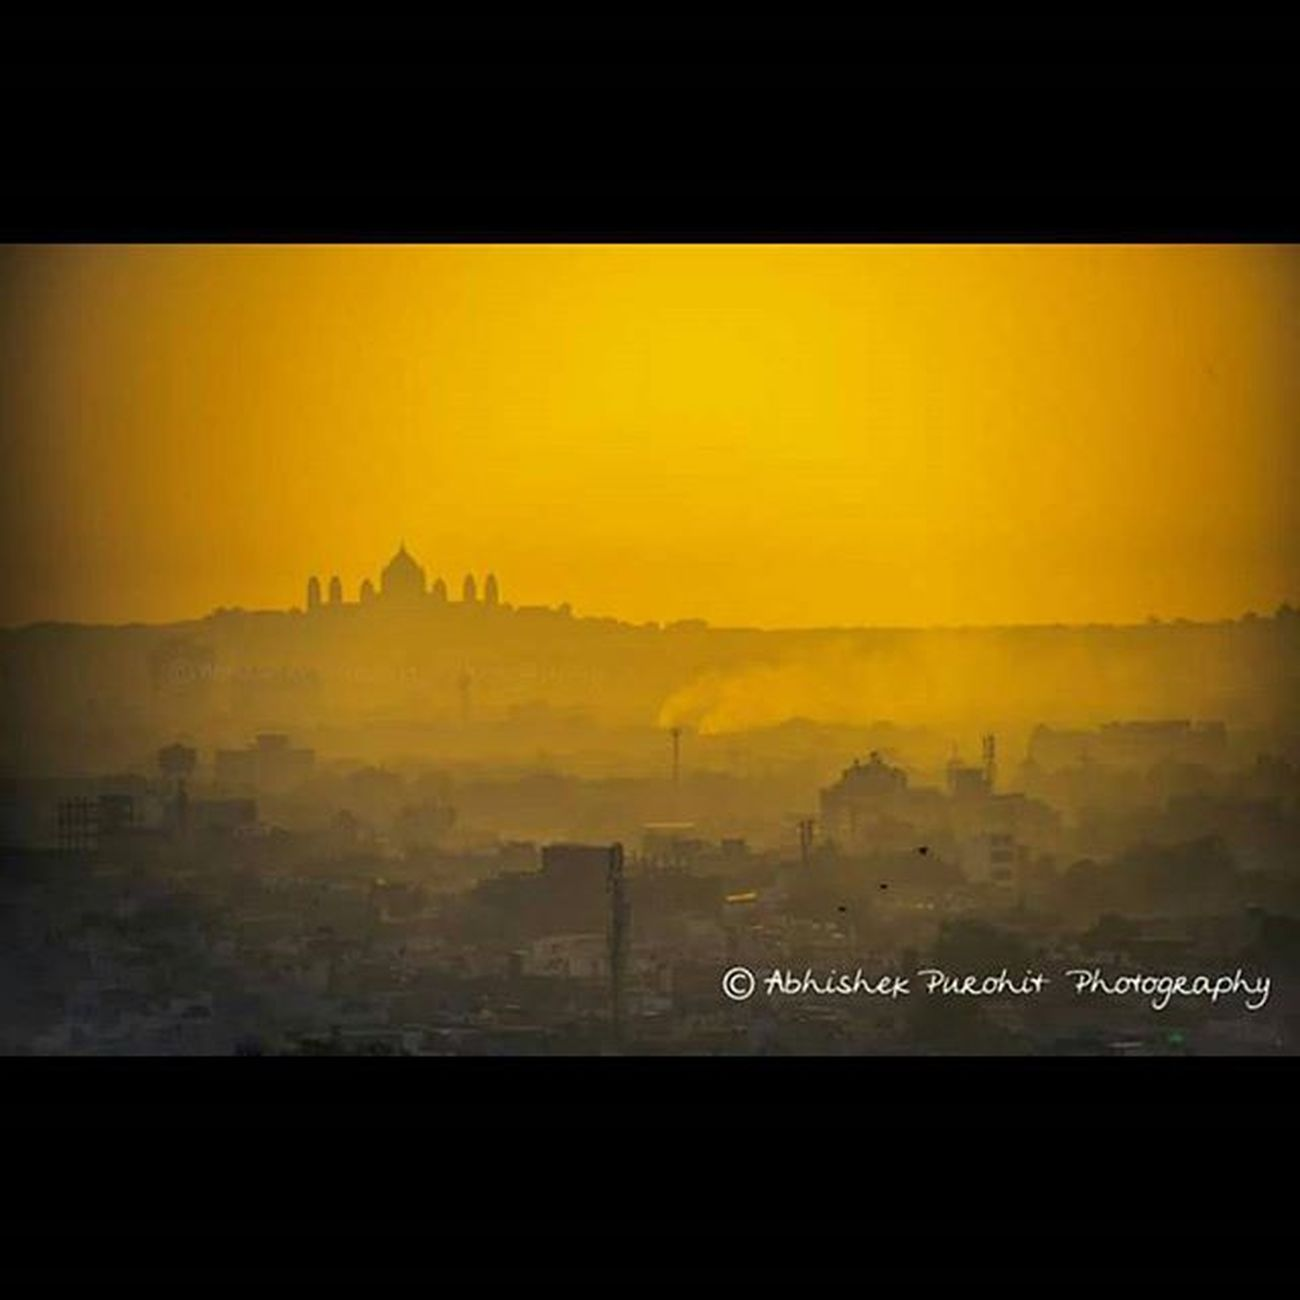 Jodhpur's taj mahal silhouette and cityscape clicked during magical morning golden hours.Photographie  Igersjaipur Gioneeshutterbugs Jodhpur Travel Concept Jodhpuri Knowledge Learn Learning India Indian Rajasthan Like4like Igersjodhpur Picoftheday GoldenHours Morning Pic hours Silhoute umaid bhawan Cityscape